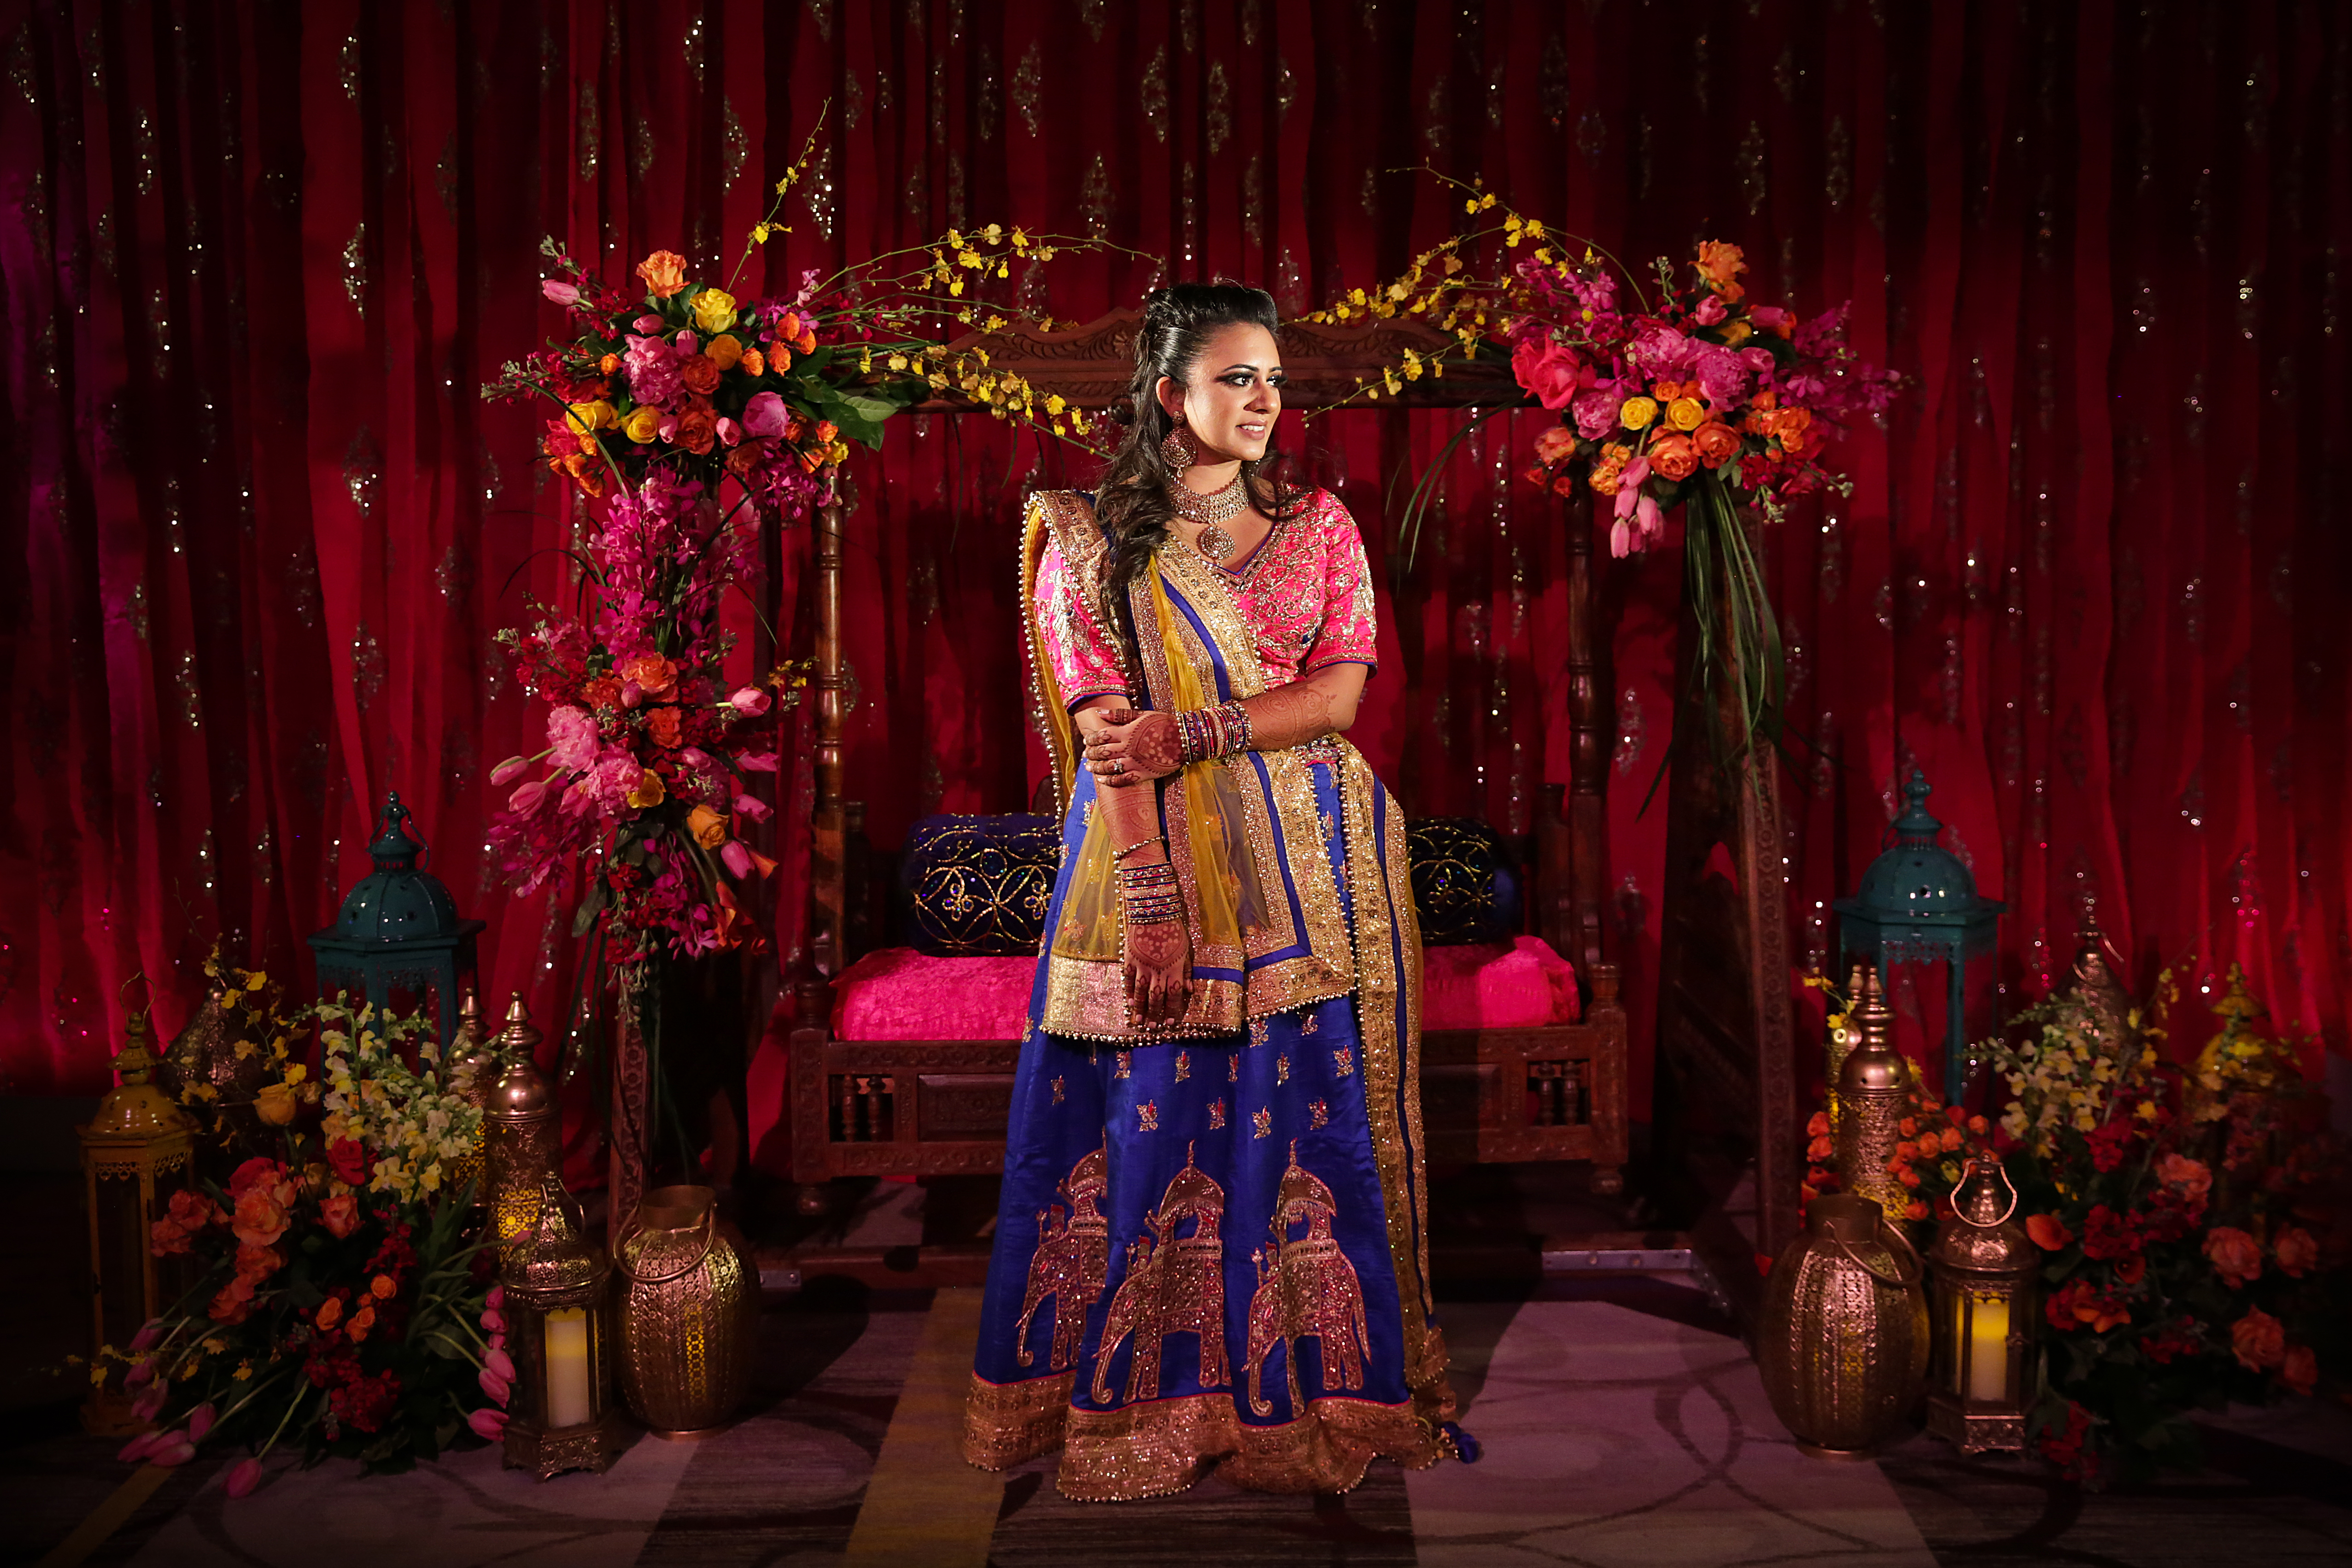 EFFLORESCENT NEW JERSEY WEDDING - Sonal J. Shah Event Consultants